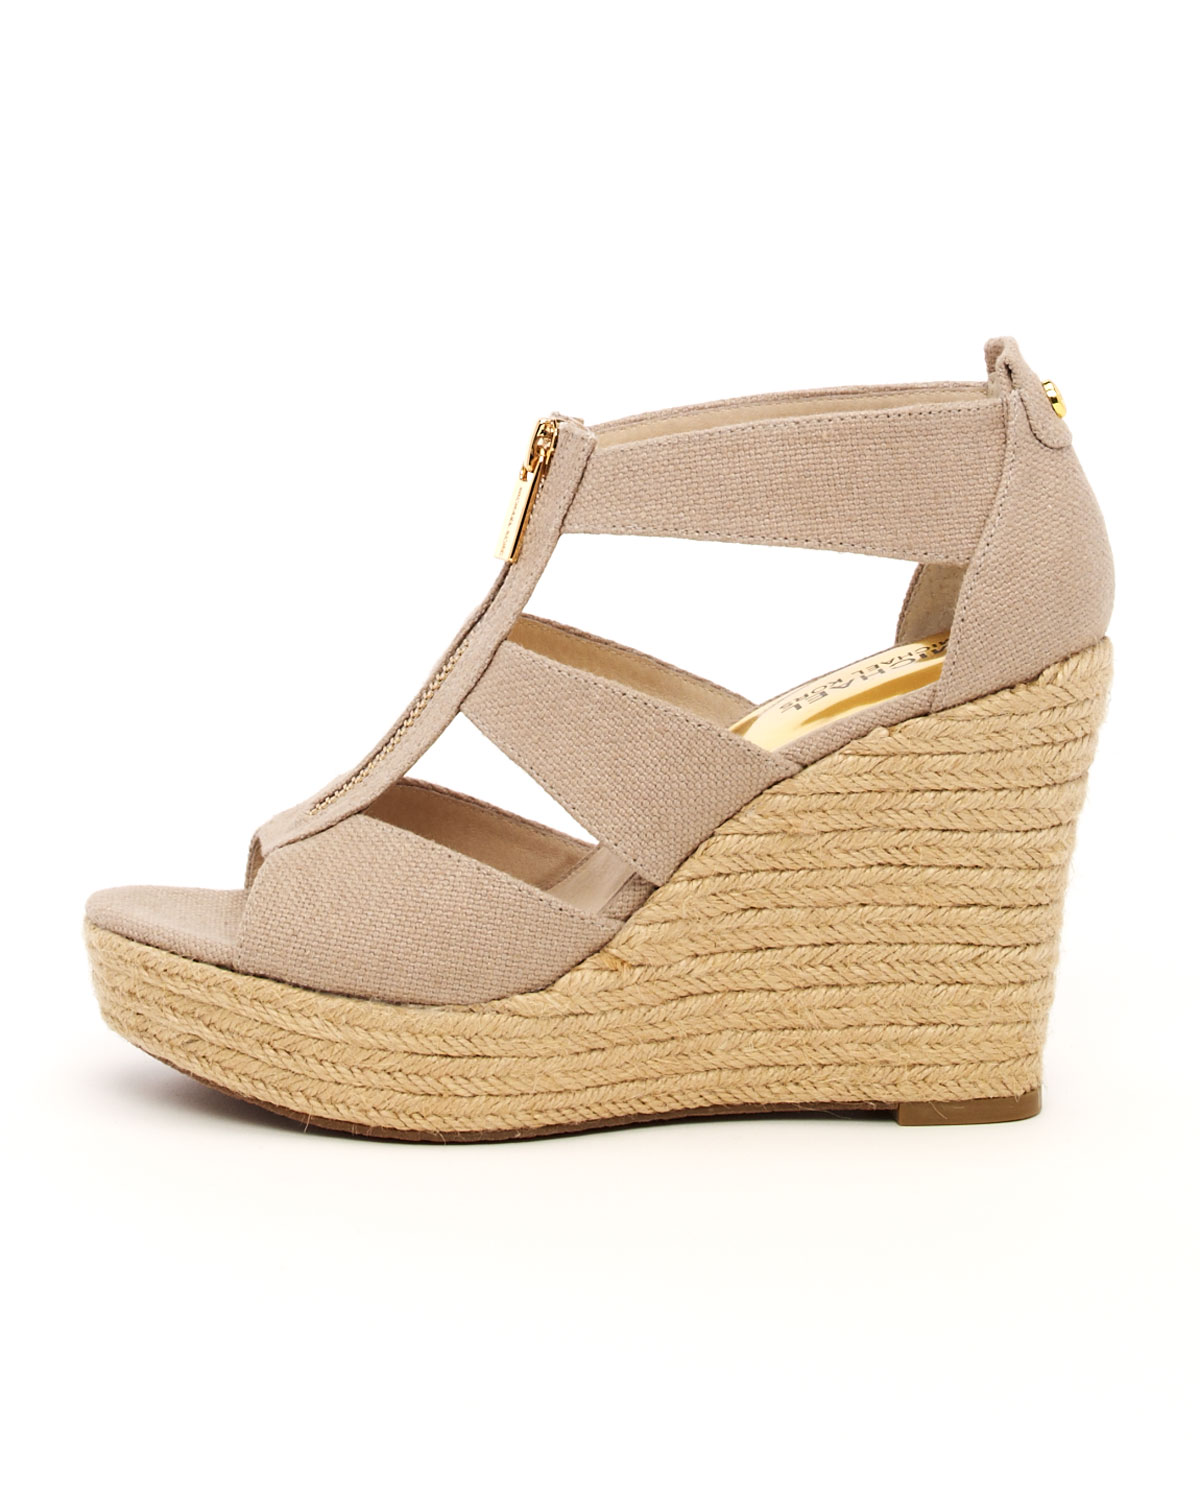 31b232ef927e Lyst - Michael Kors Canvas Wedge in Brown